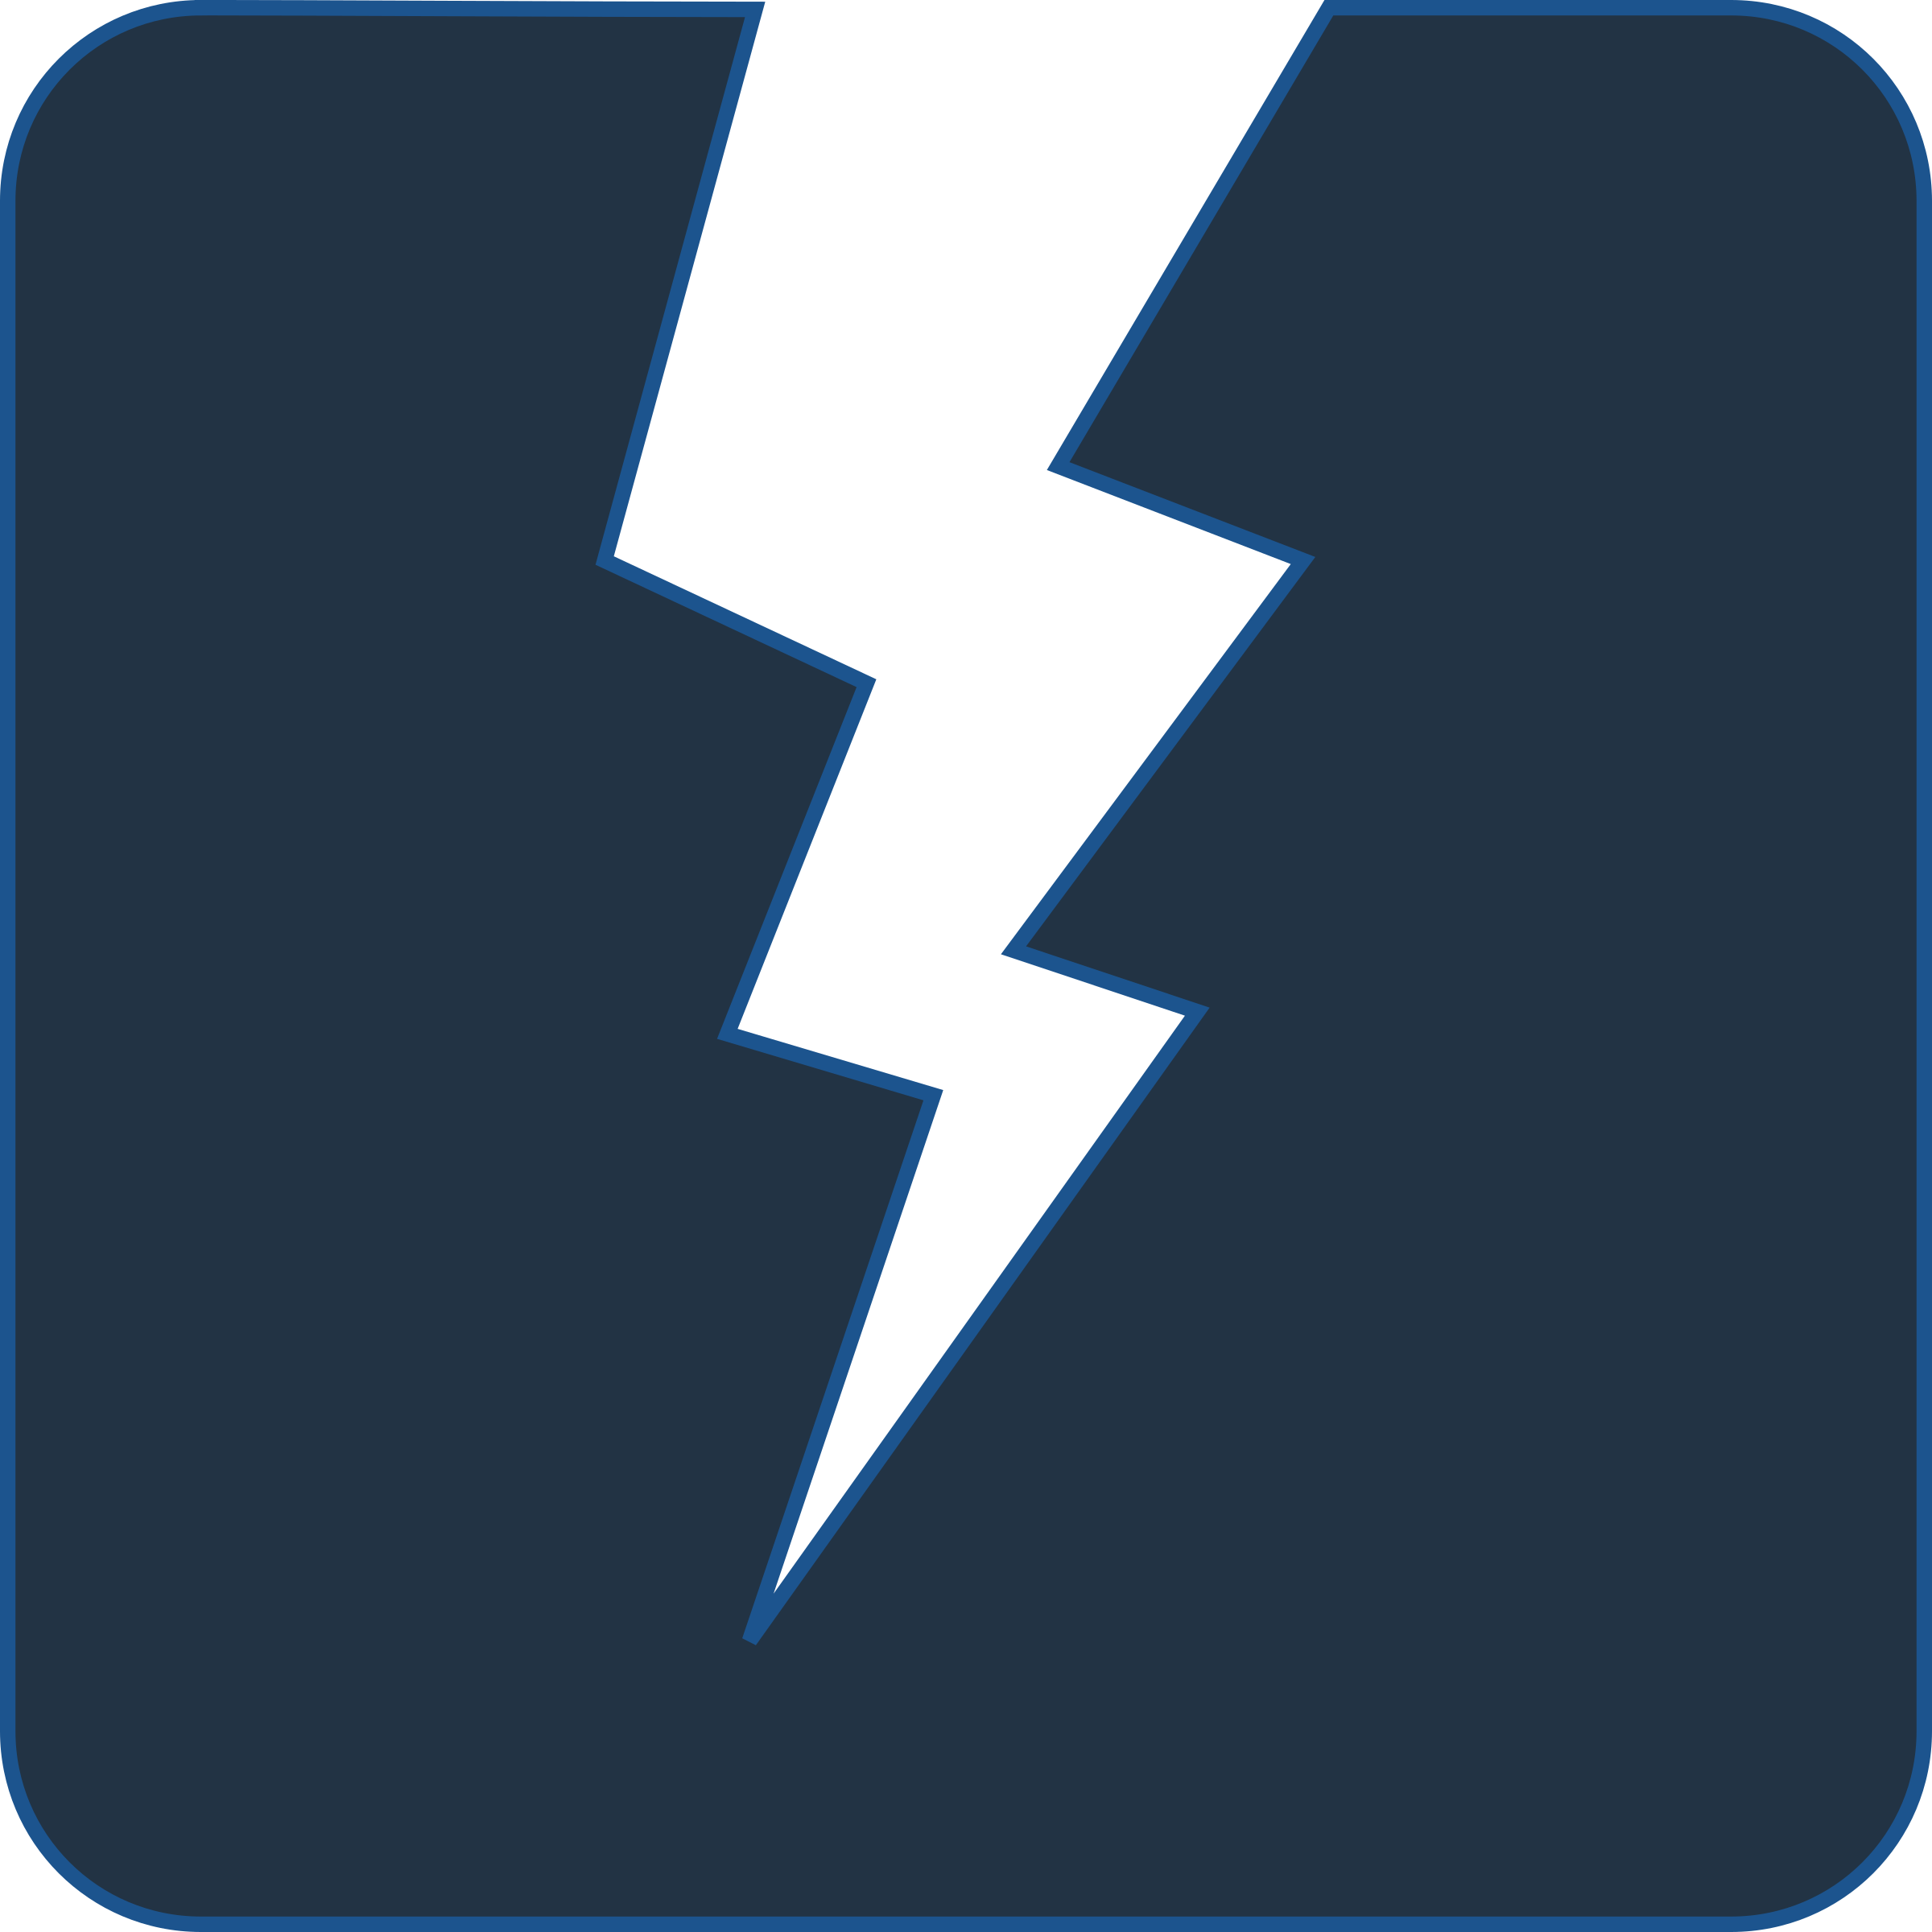 Power Icon by LlubNek